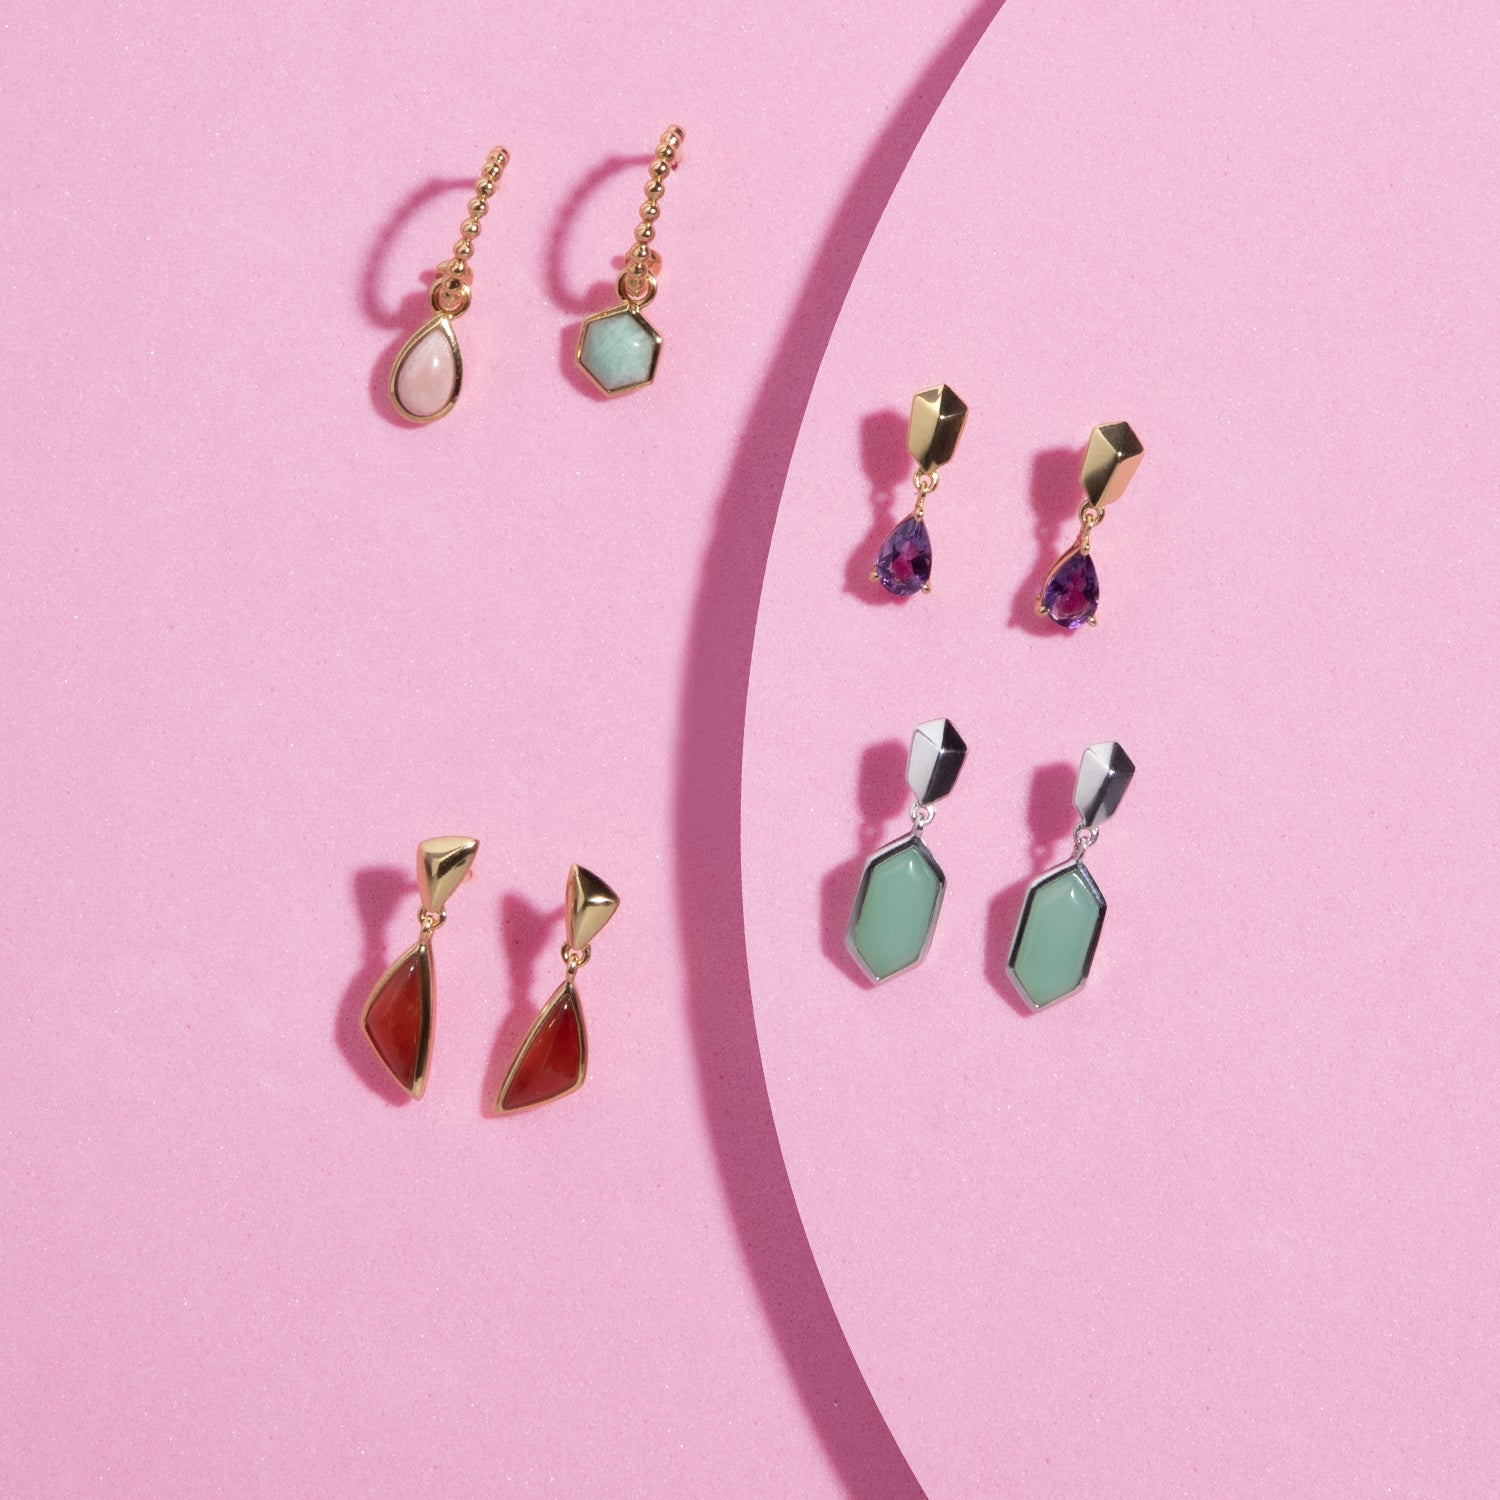 Mismatched & Asymmetric Gemstone Earrings | Summer hoops, drops and chain threader earrings